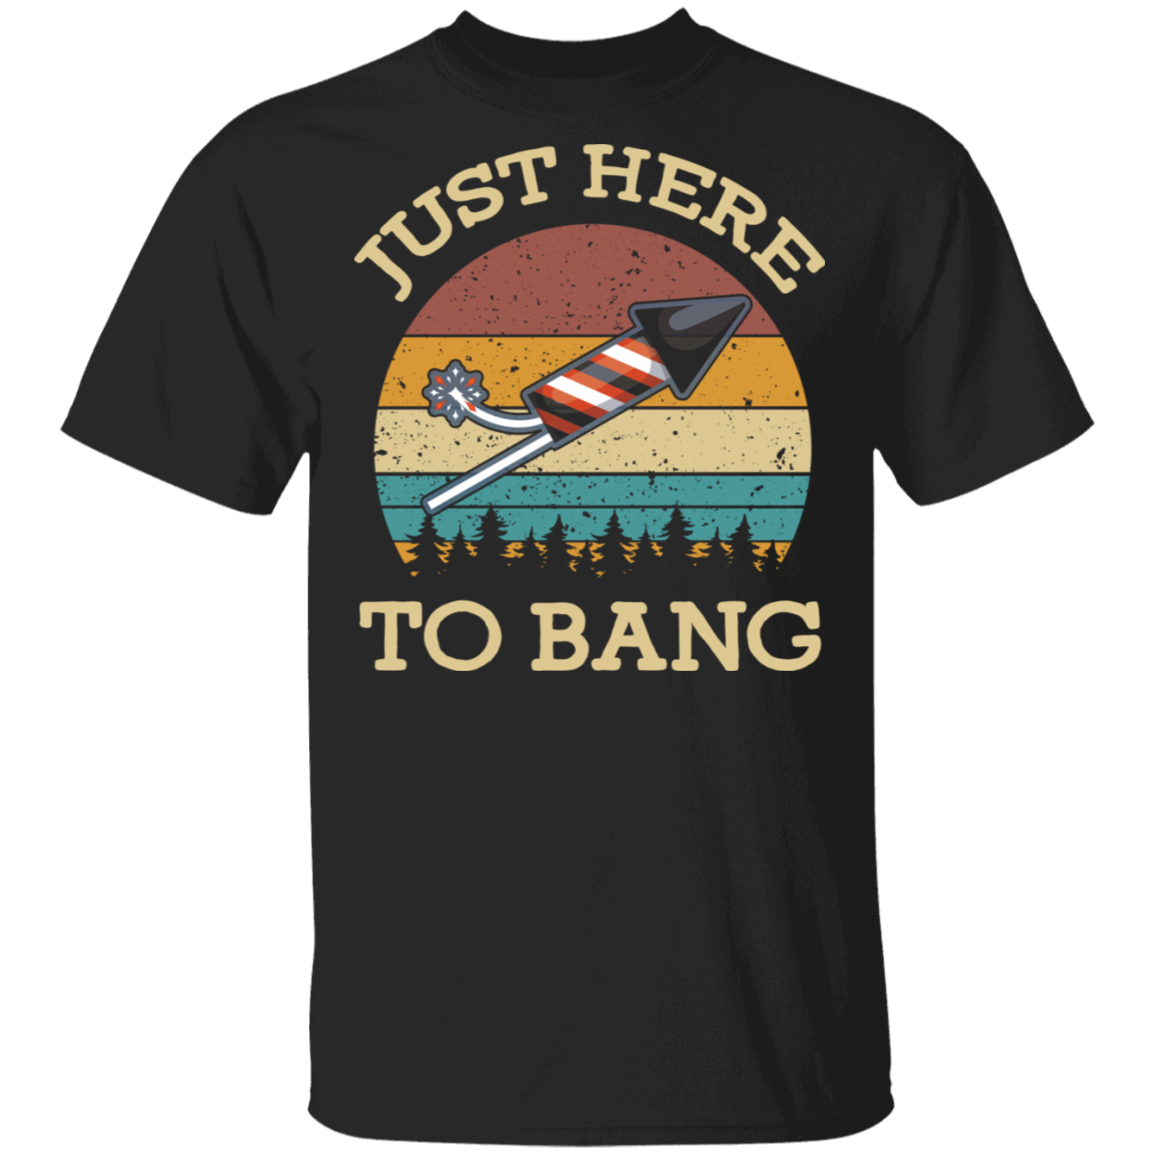 Just Here To Bang T-Shirt 4th of July Independence Day Vintage Graphic Tee For Men Women